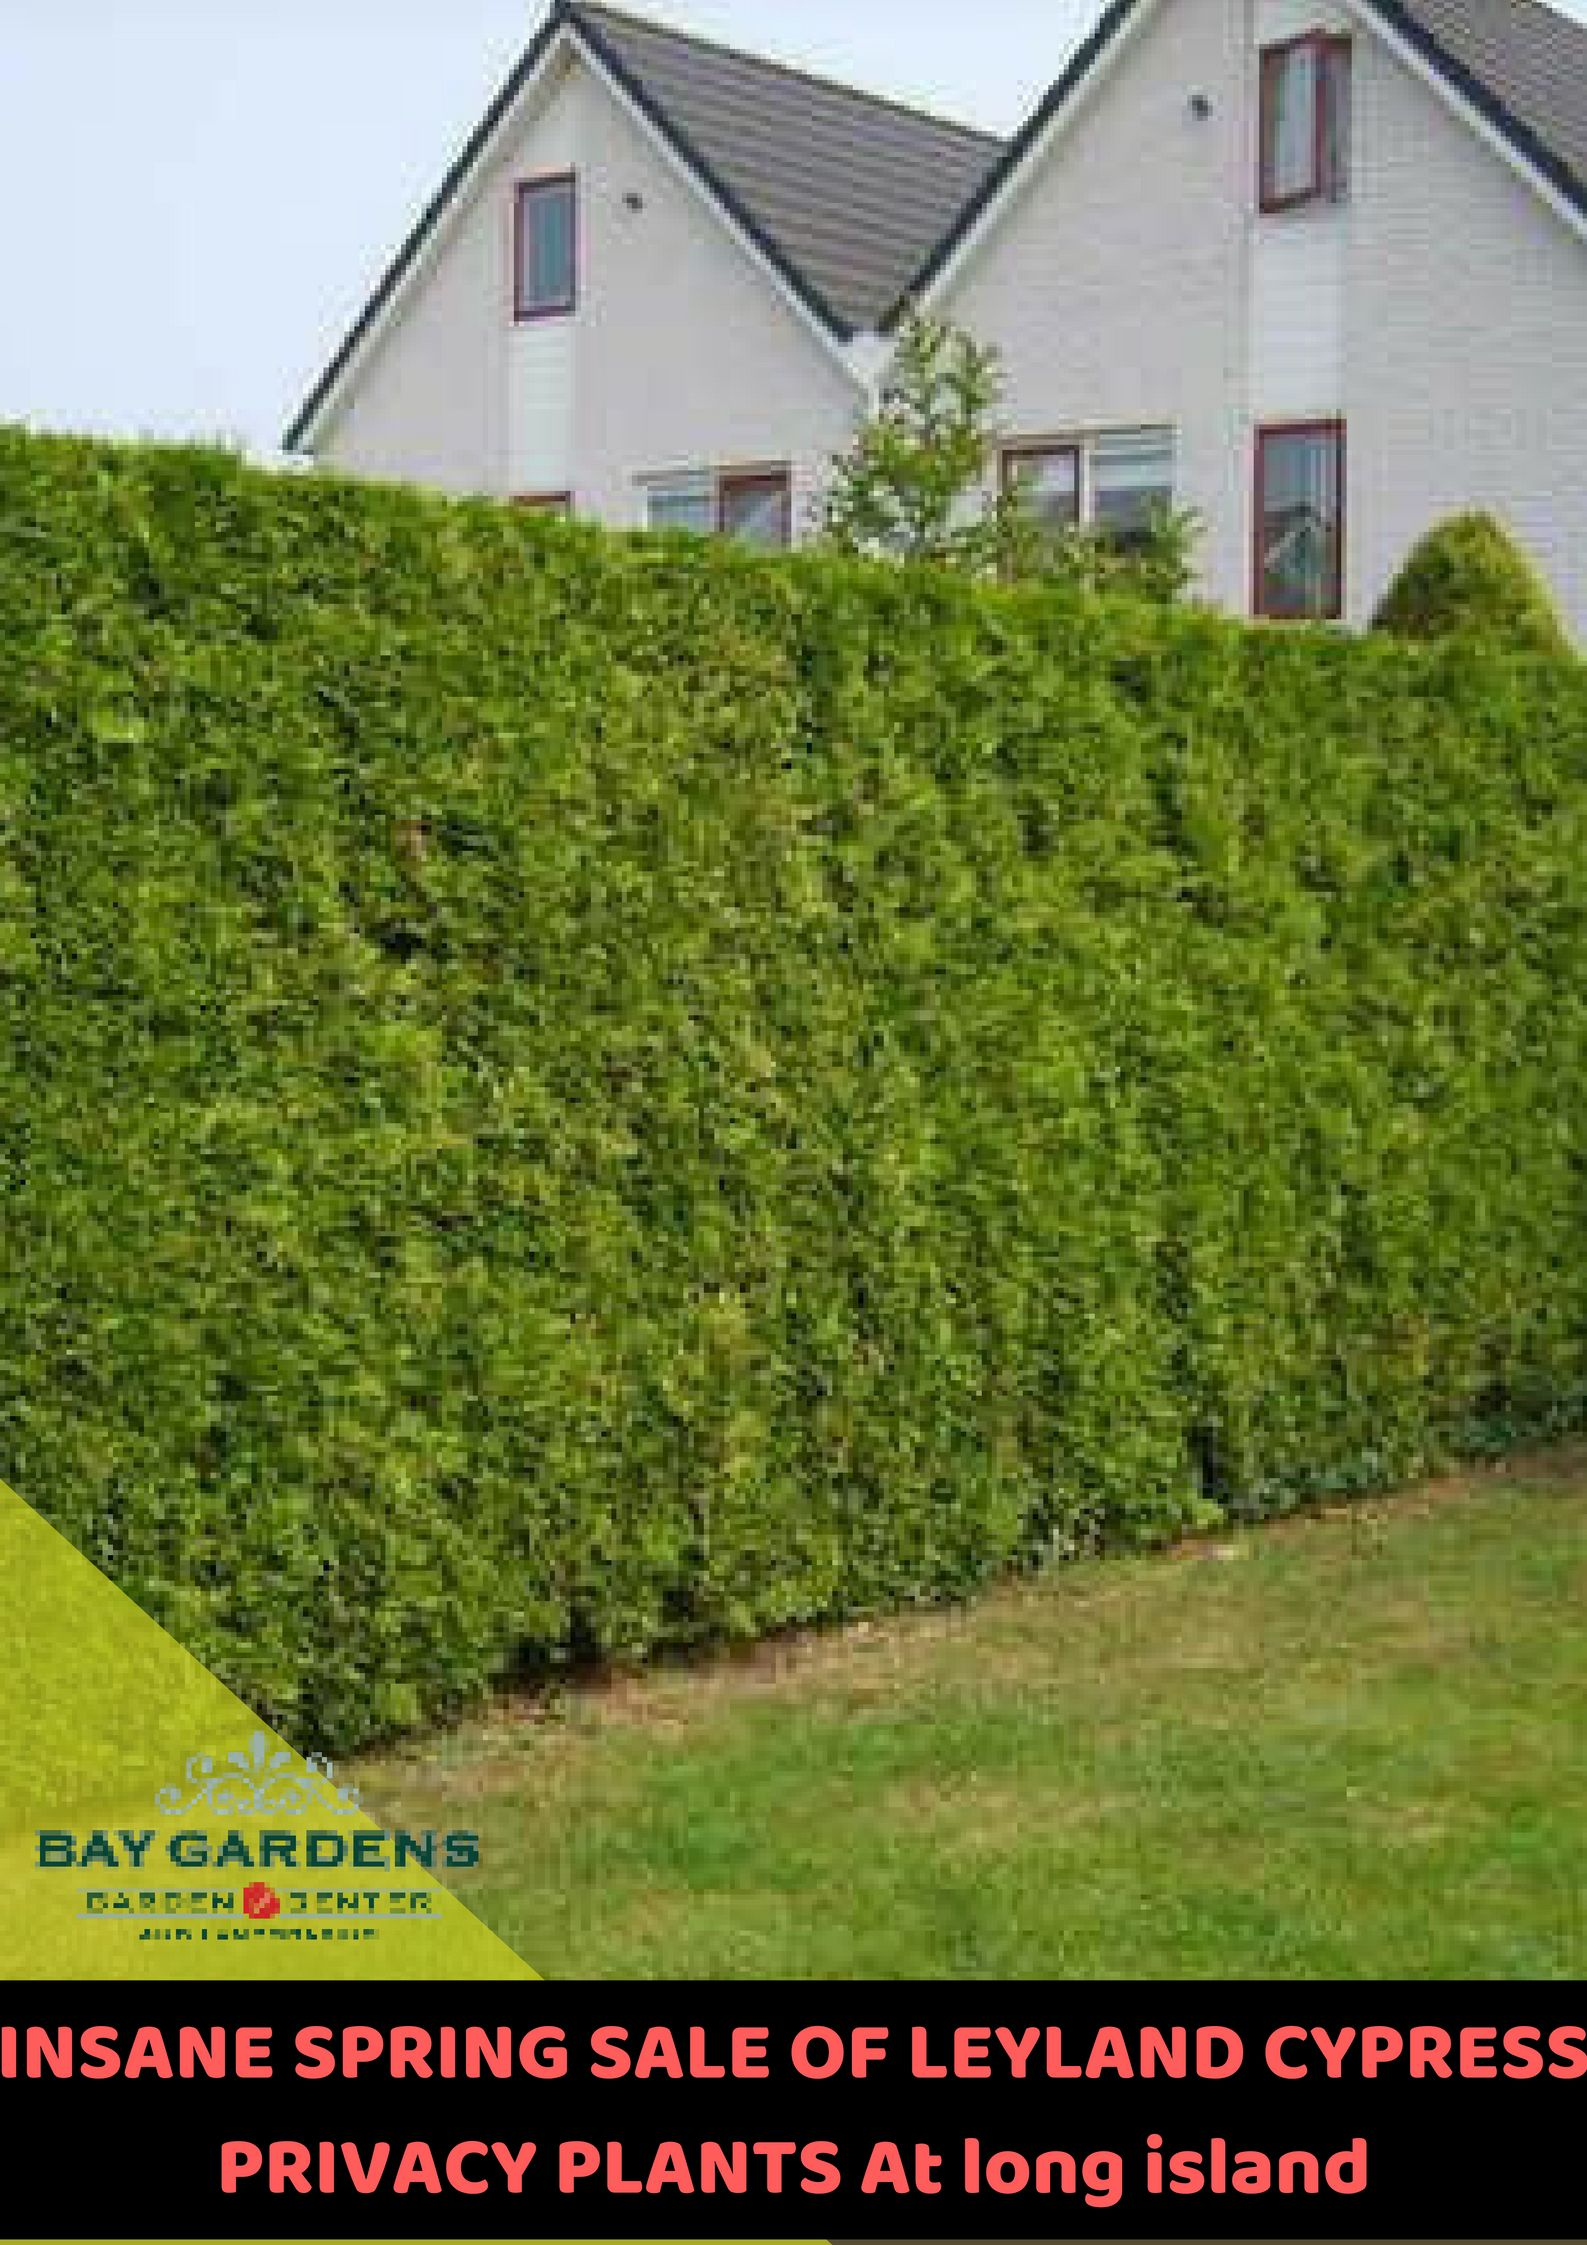 Bay Gardens Gives An Offer Of Beautiful Leyland Cypress